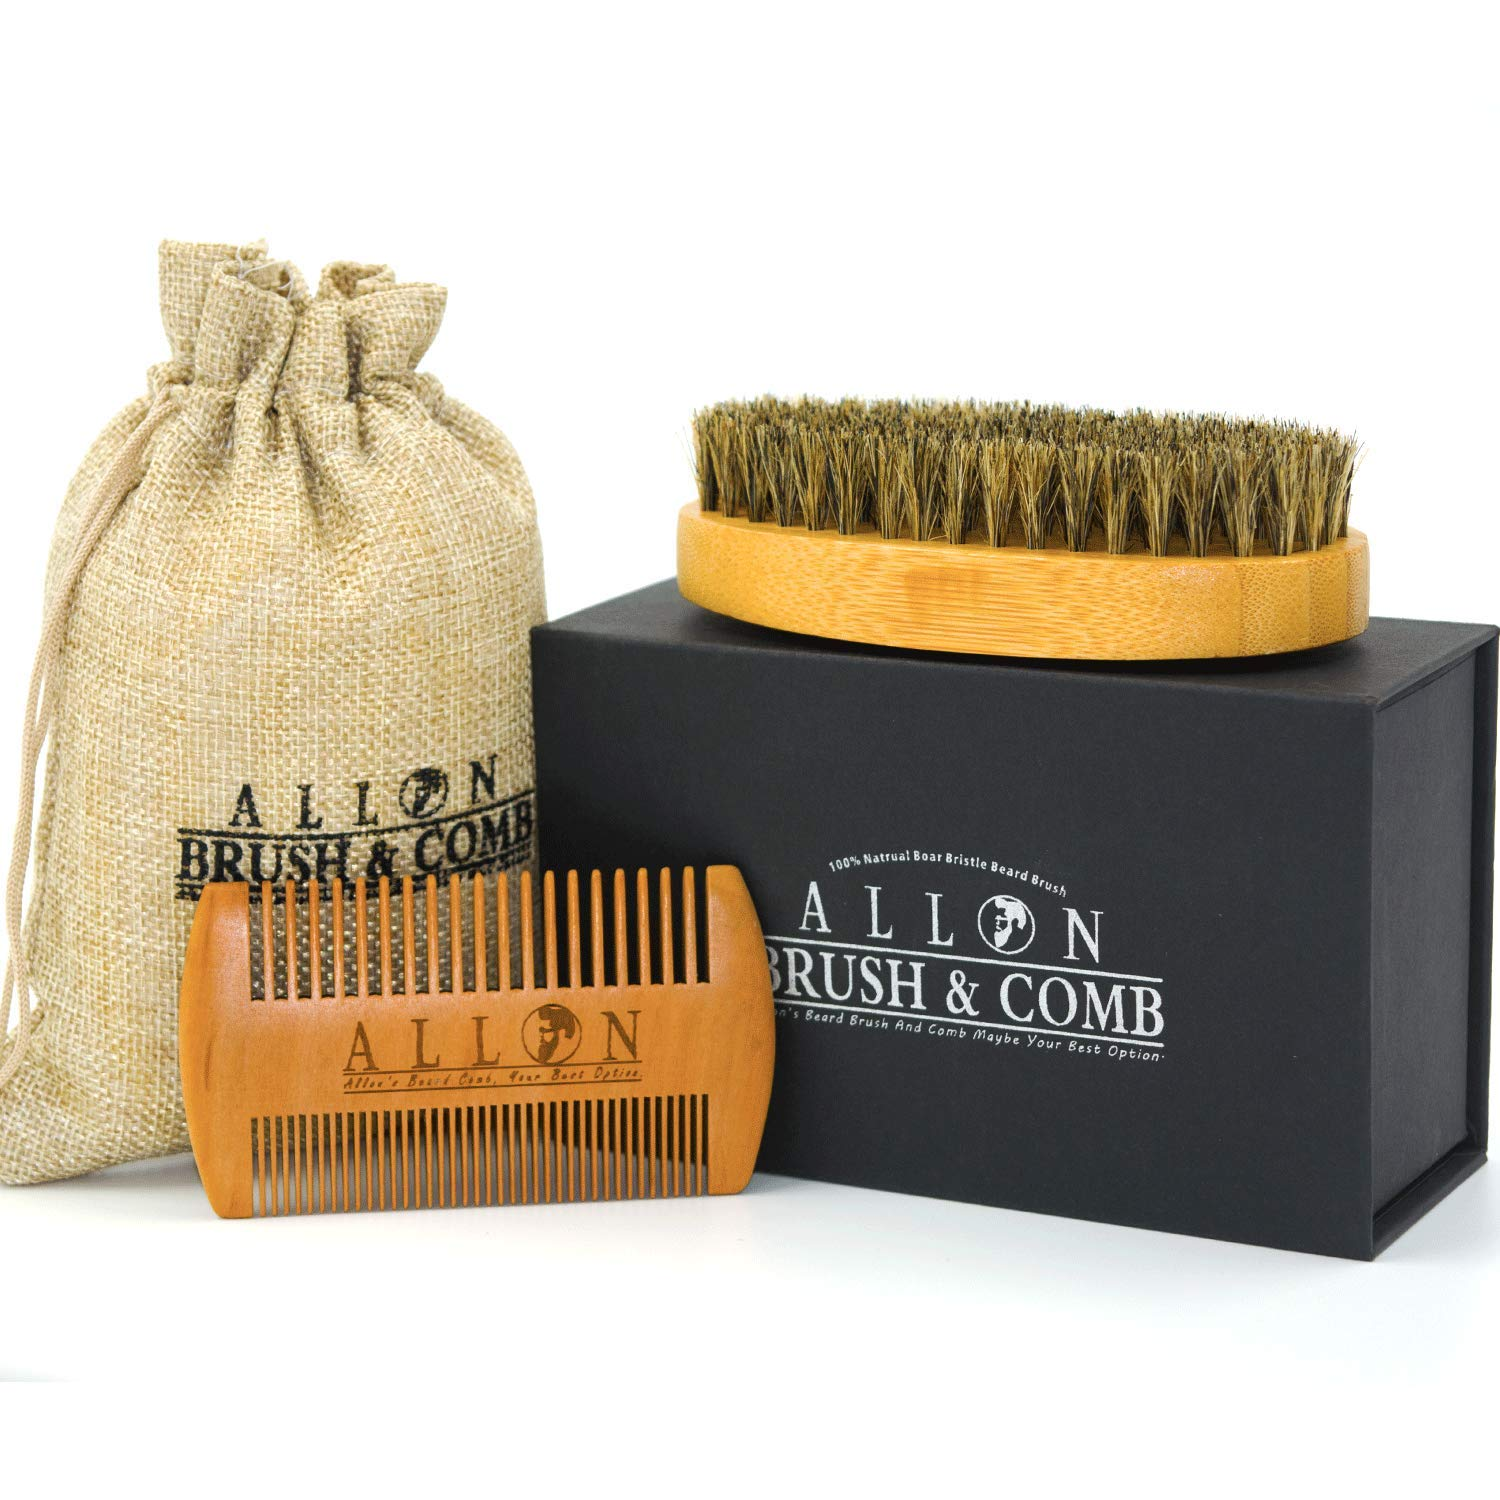 Allon Beard Brush and Comb for Man | Allon Boar Bristles Beard Brush | Handmade Wooden Comb Kit for Hair Styling and Beard Grooming with Perfect Gift Box BB001